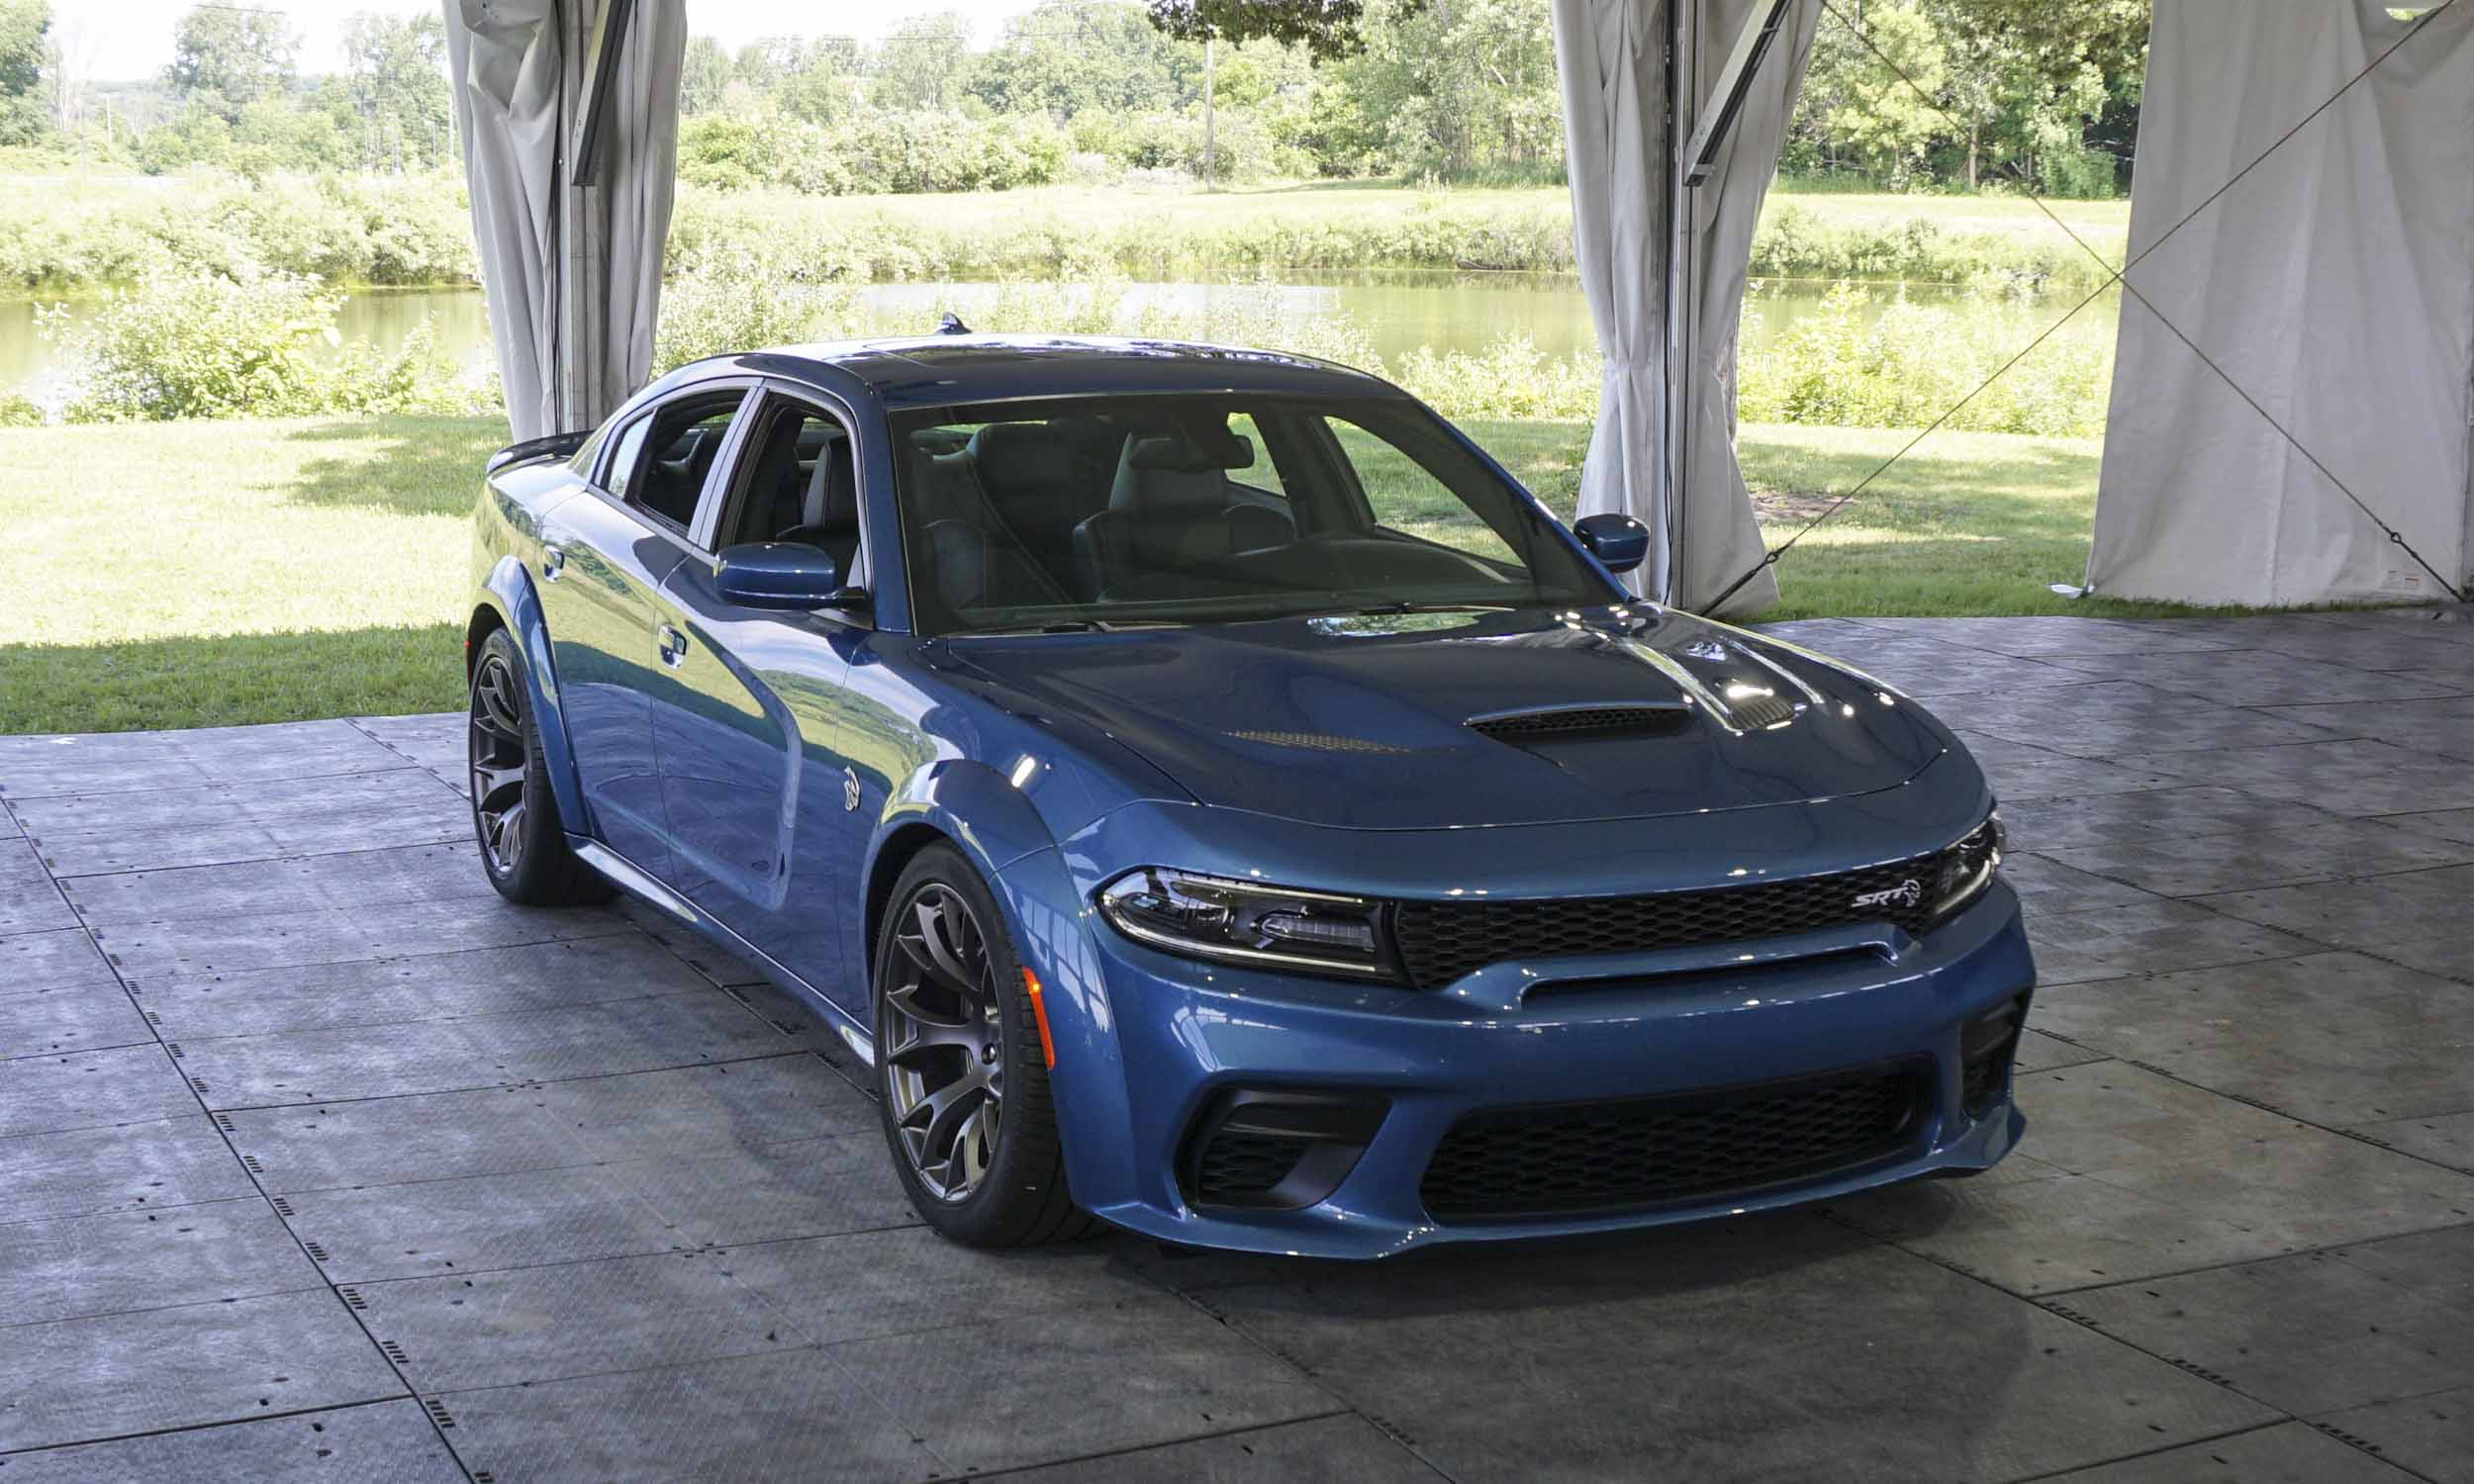 69 New 2020 Dodge Charger Srt Pricing